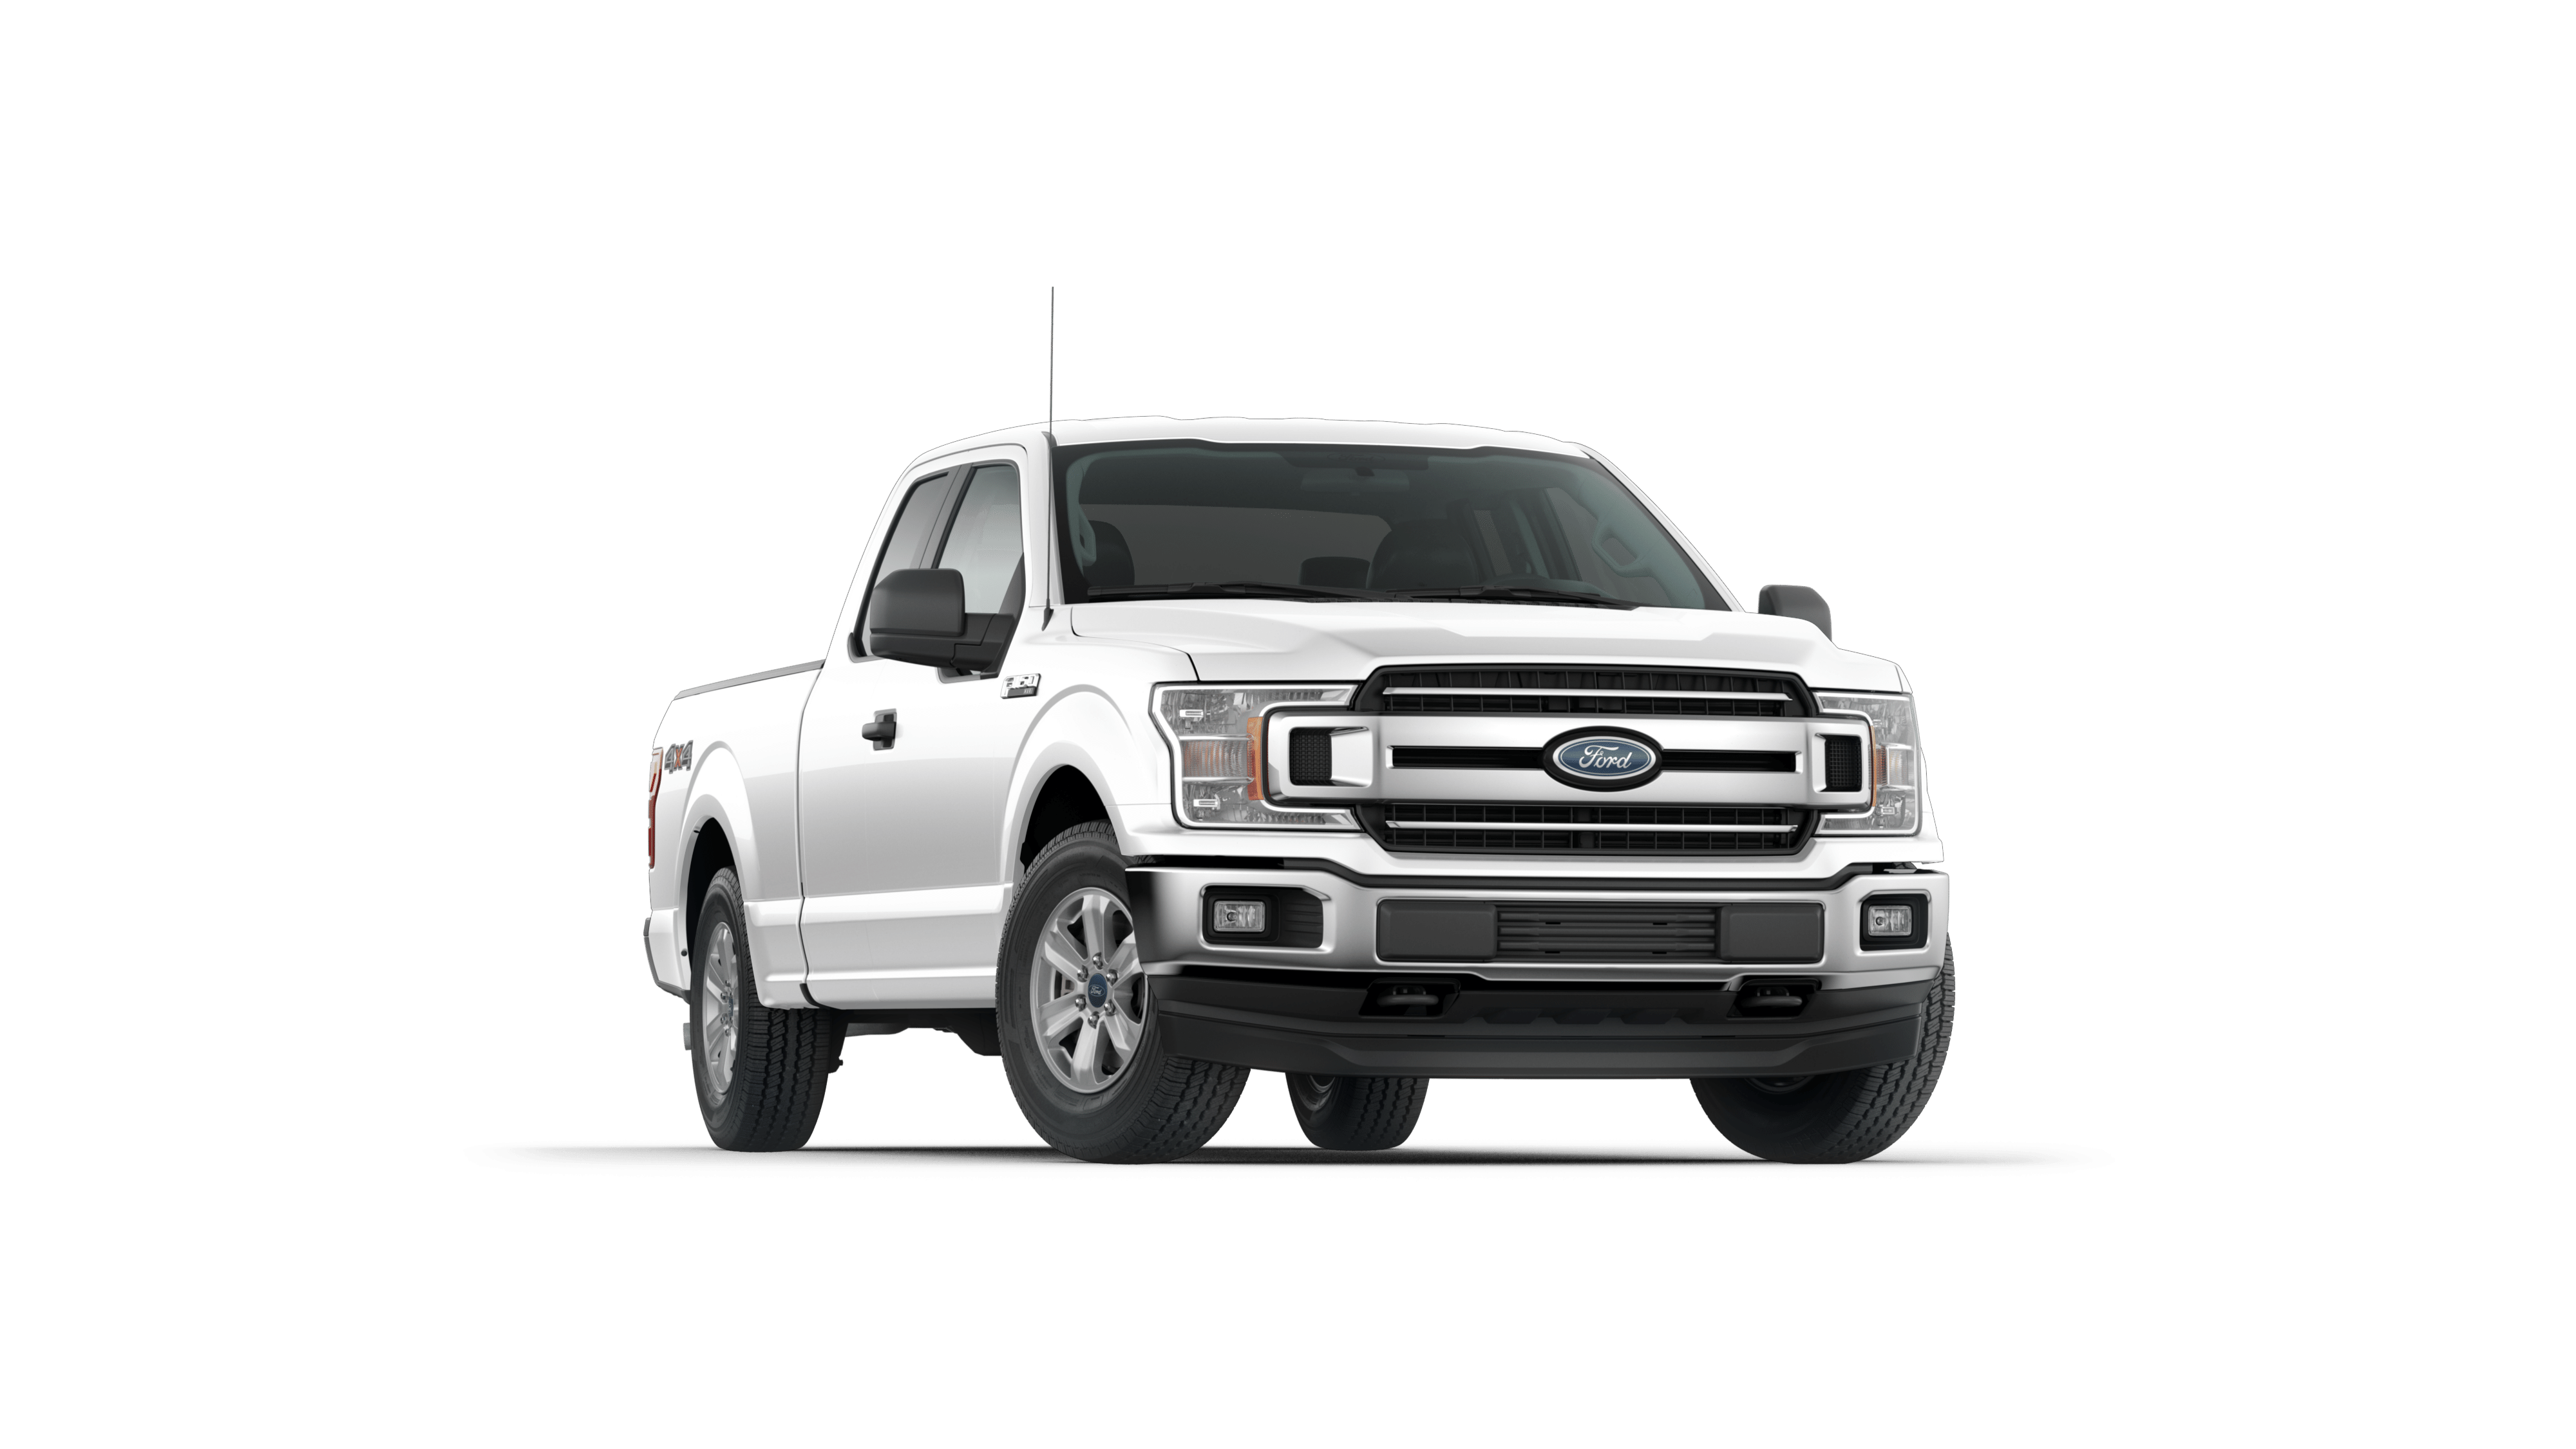 2018 ford f 150 for sale in natrona heights 1ftfx1e56jkf88945 cochran ford. Black Bedroom Furniture Sets. Home Design Ideas